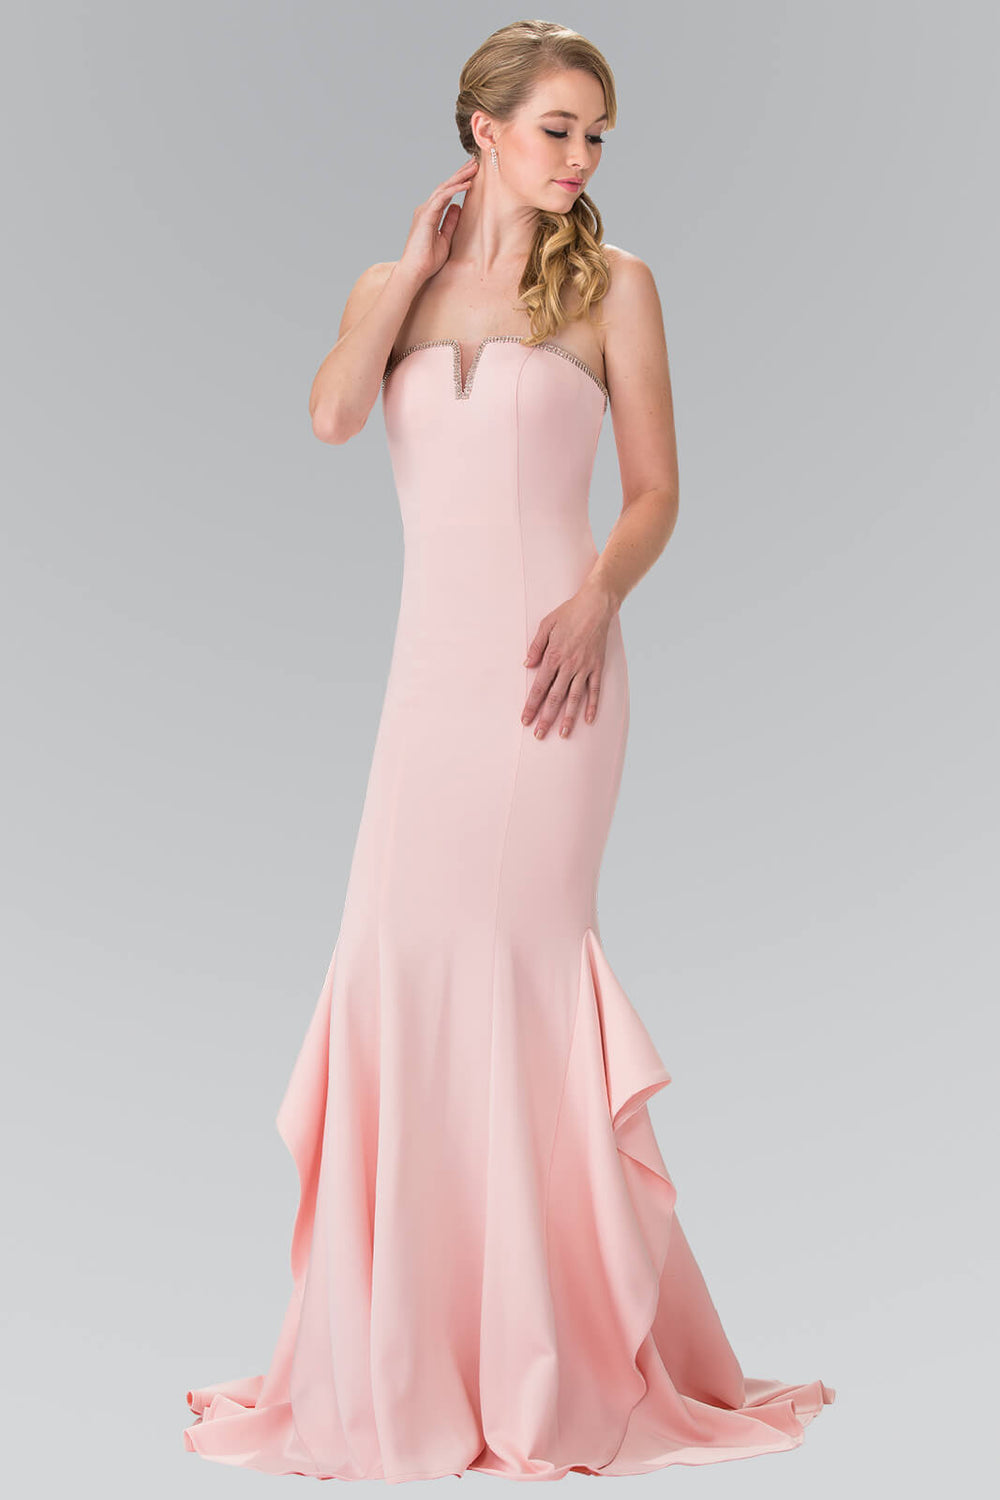 Strapless Long Prom Dress Formal Evening Gown - The Dress Outlet Blush